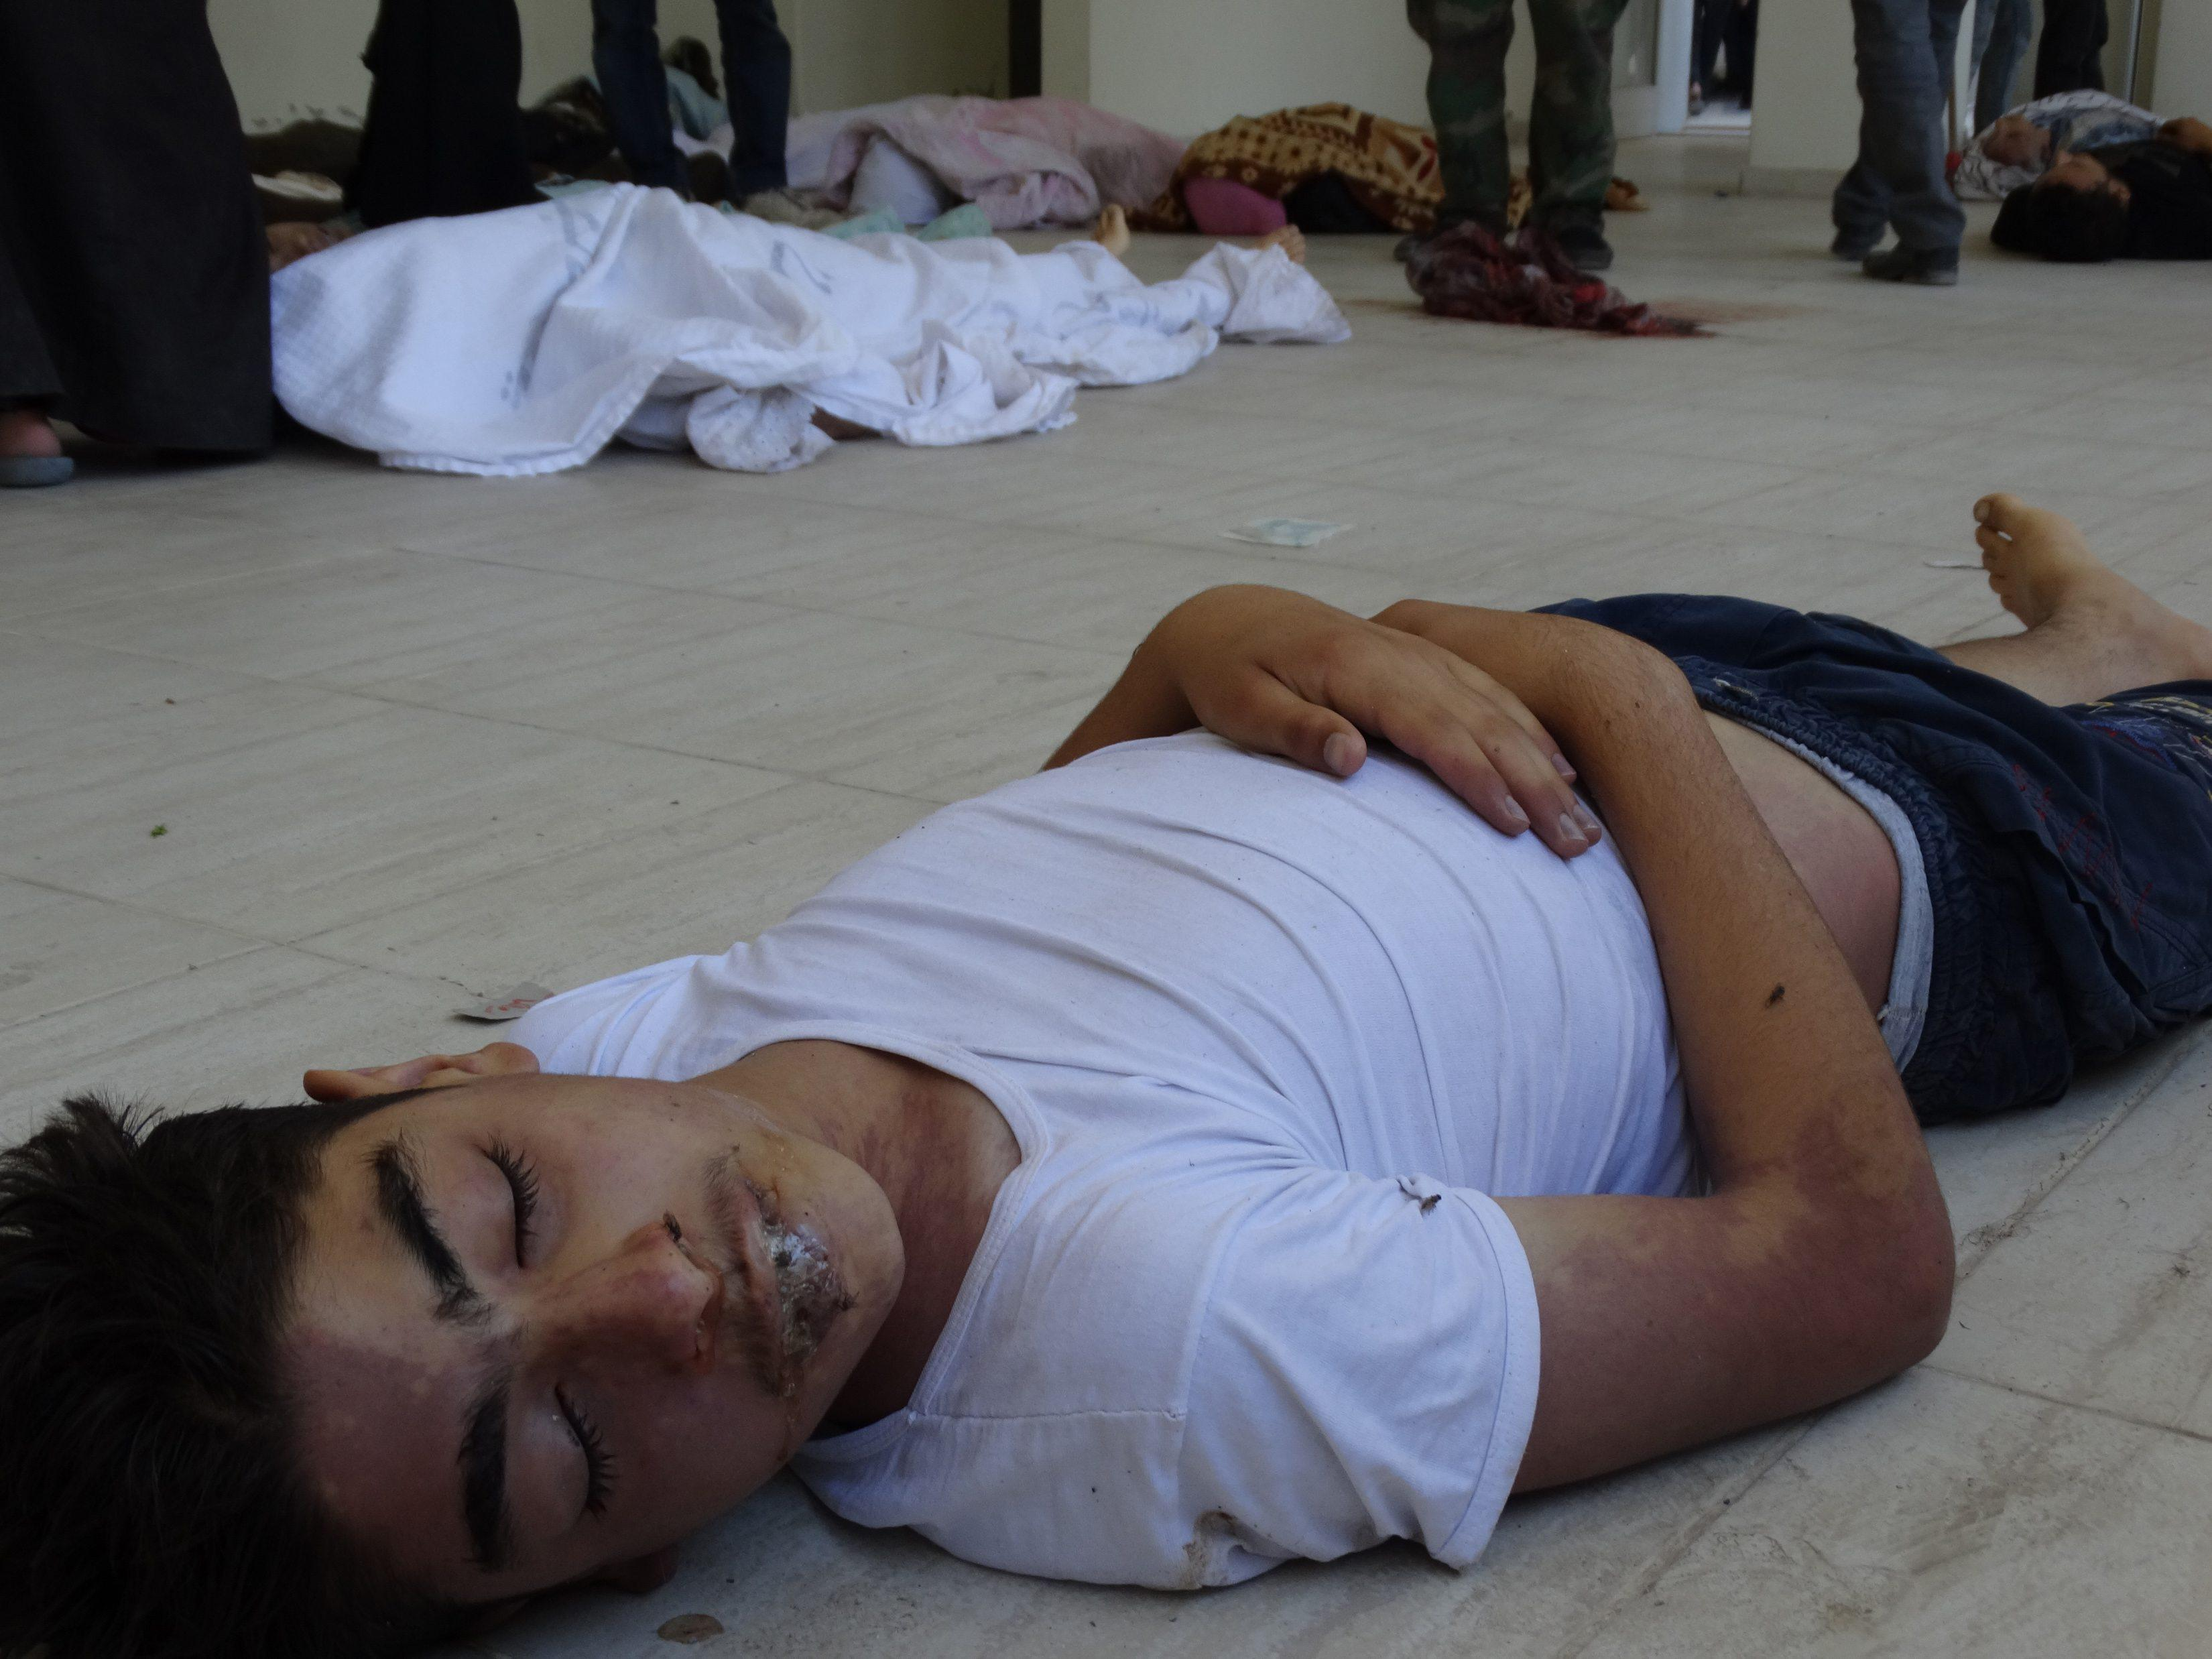 Syria child casualty